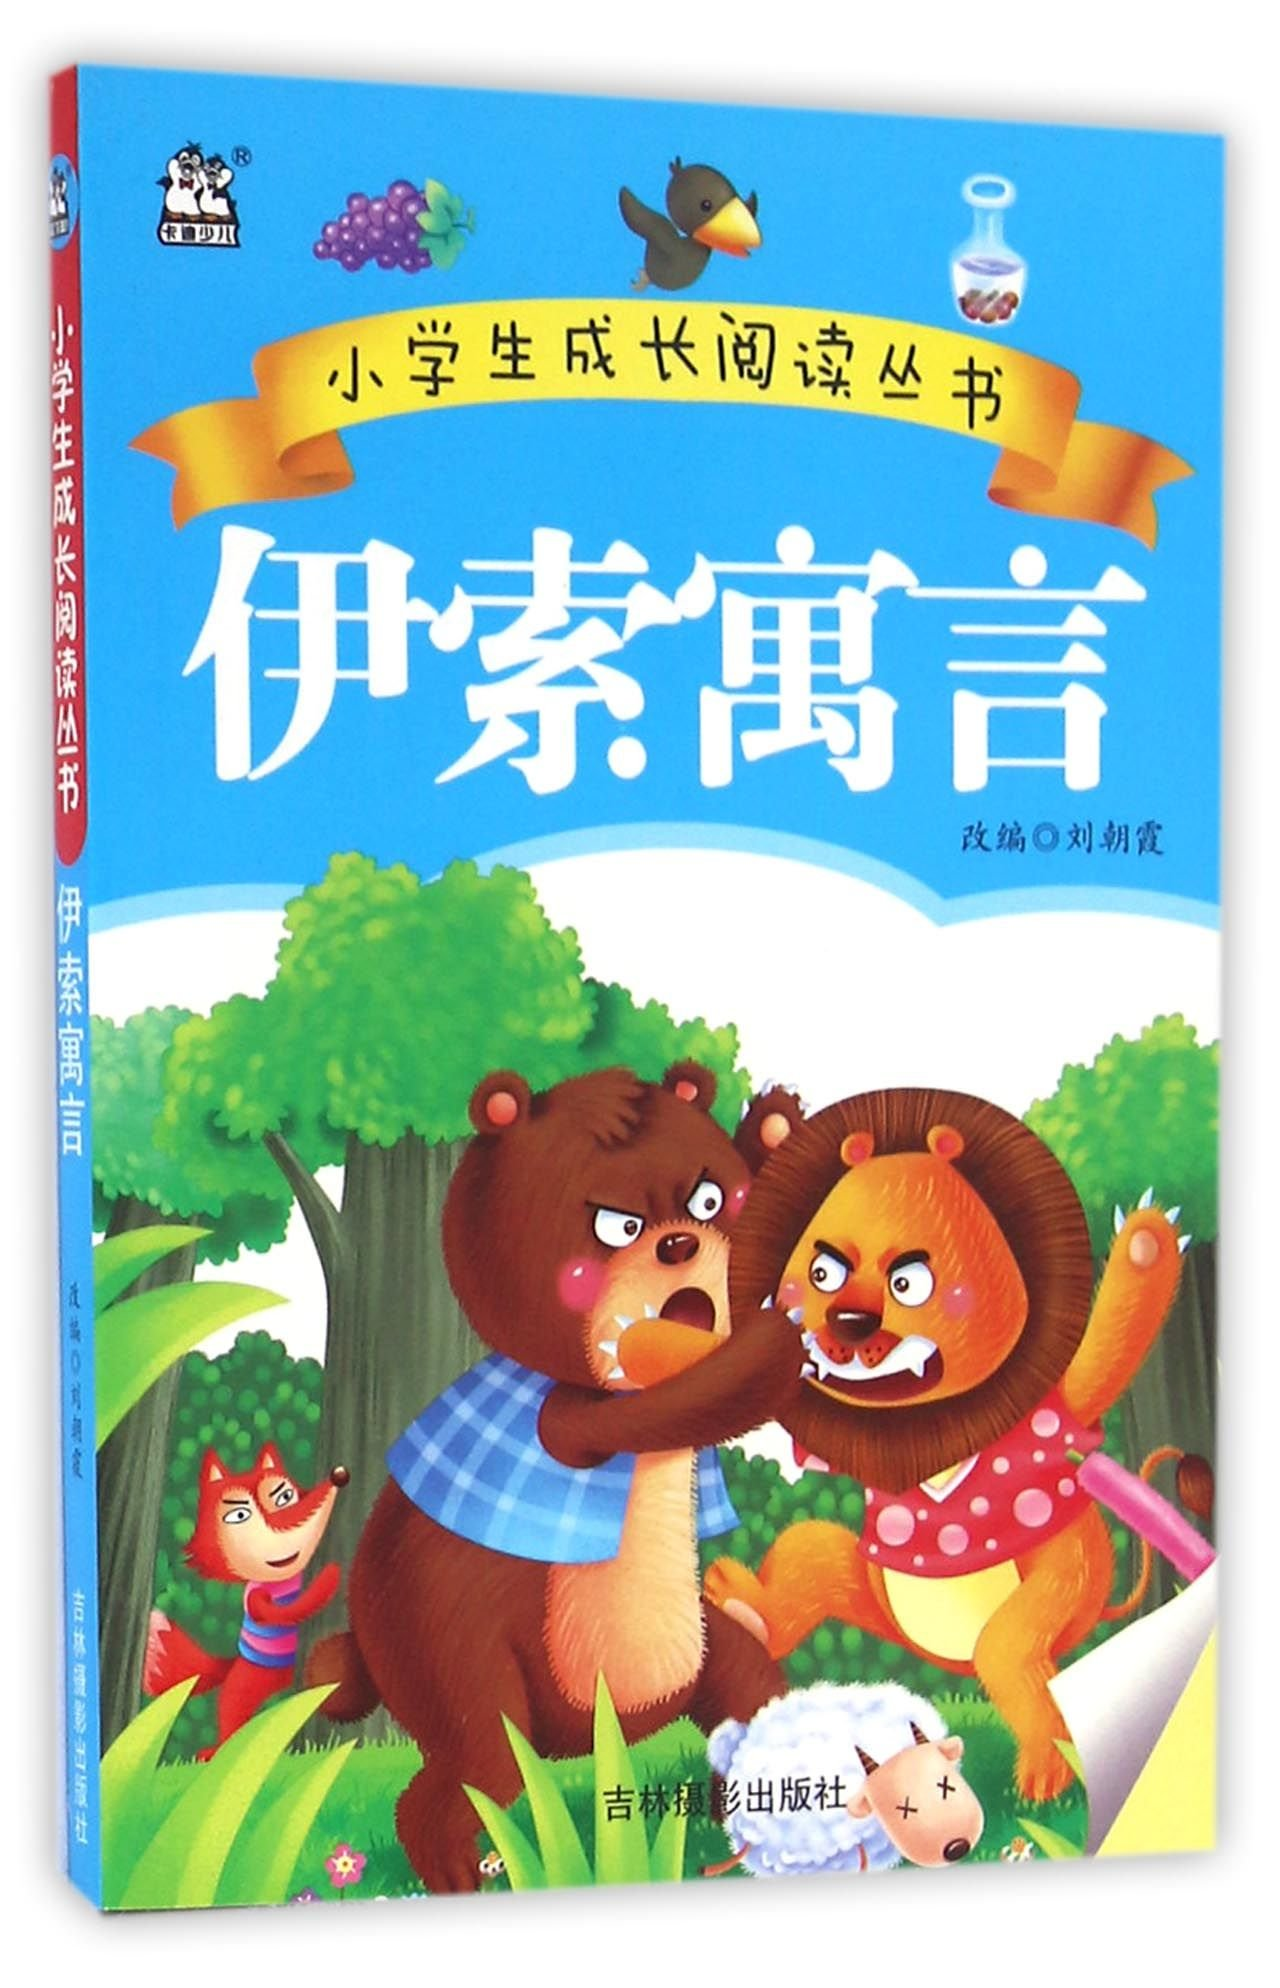 Aesop's Fables (Chinese Edition) pdf epub